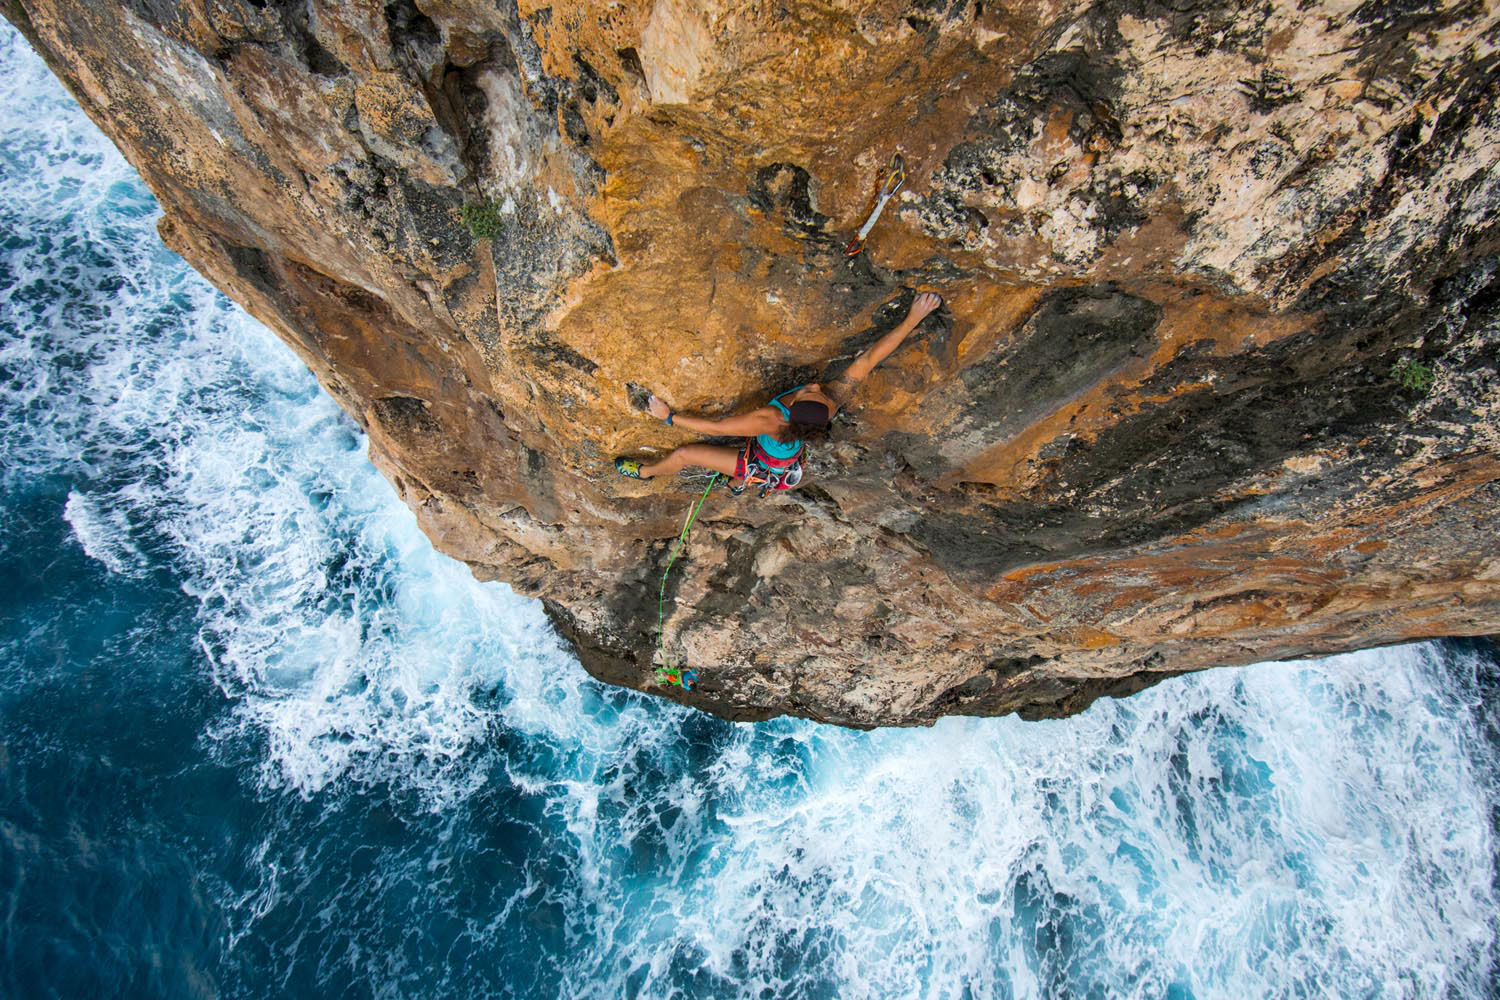 The sea cliffs of Cayman Brac offer an exhilarating climbing experience. Photo by Andrew Burr, courtesy Rock Iguana